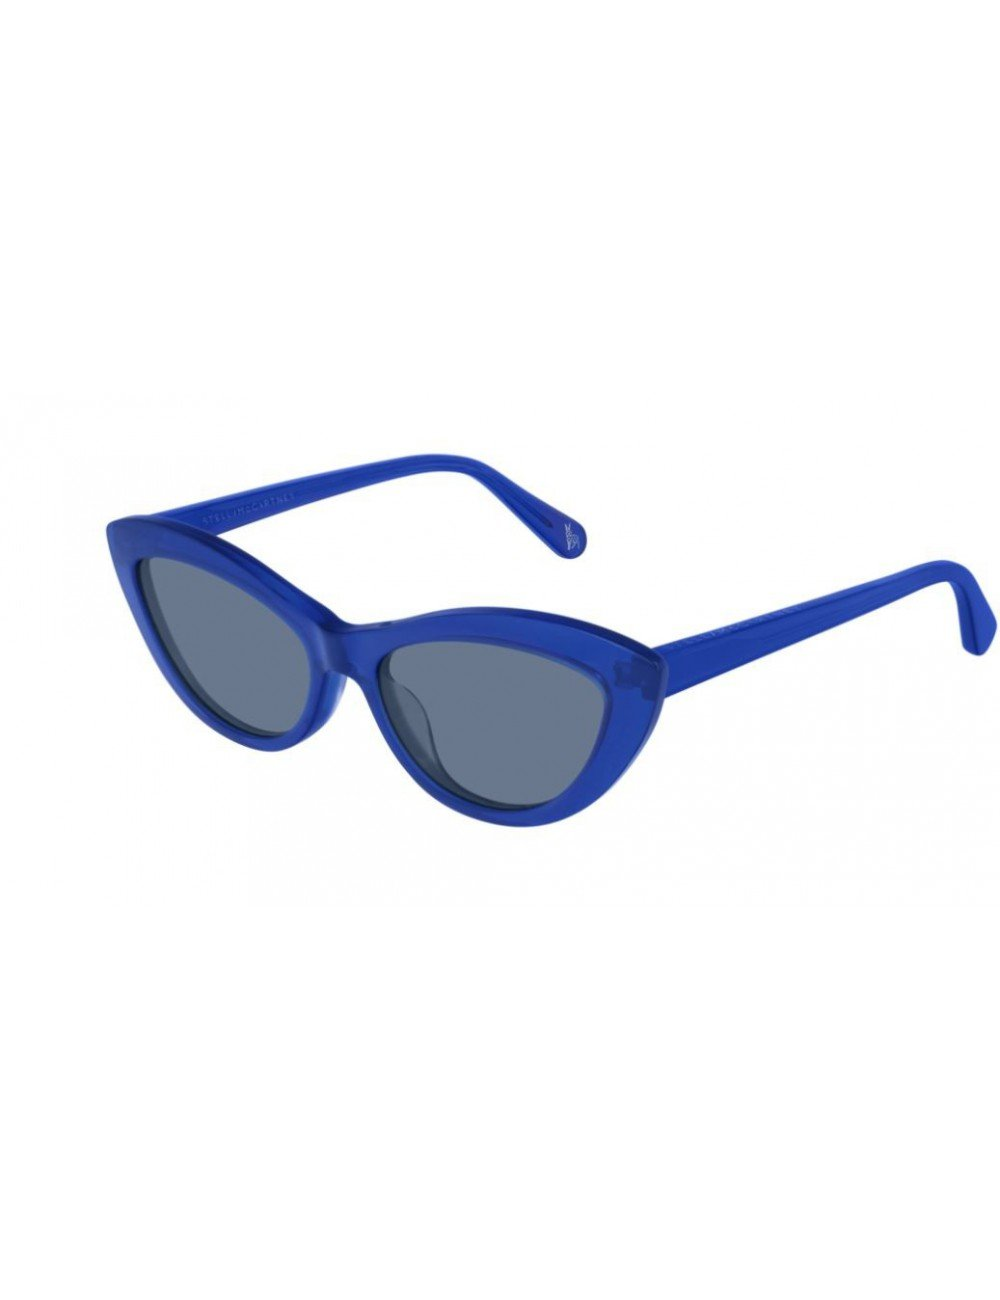 Lunettes de soleil Stella McCartney Stella Kids SK0050S | Revendeur Agréé Stella McCartney | product_reduce_price